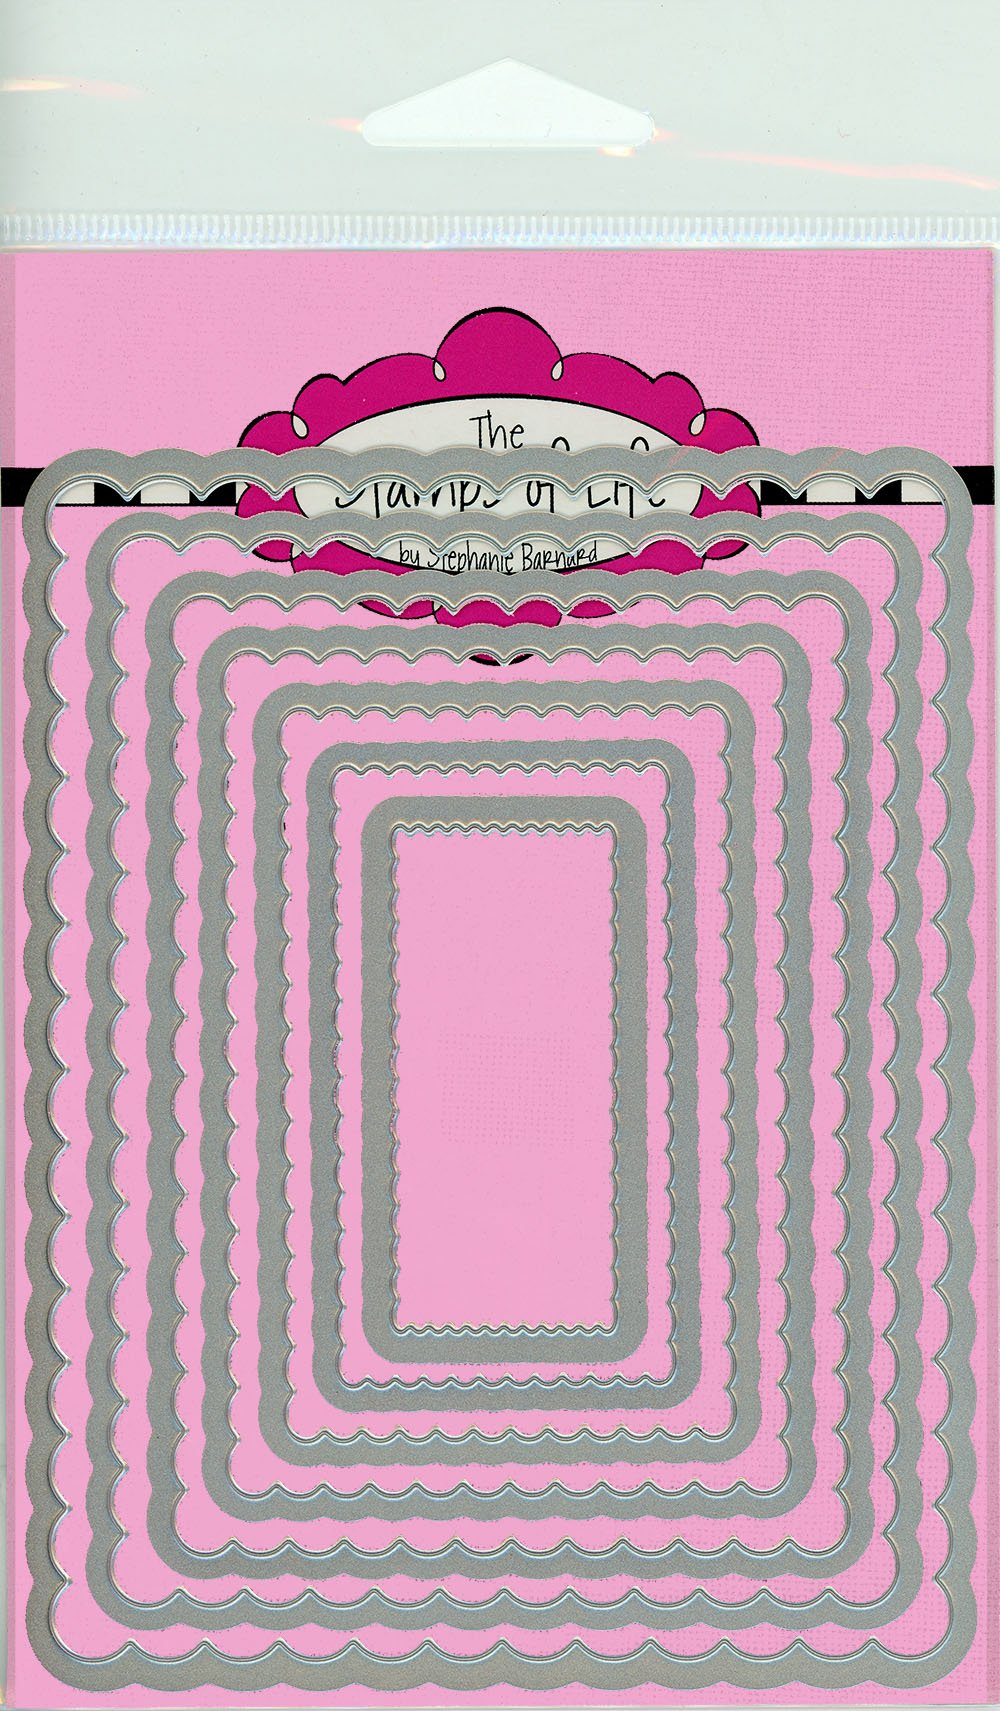 Scalloped Rectangles Die Cuts for Card Making and Scrapbooking by The Stamps of Life - Borders